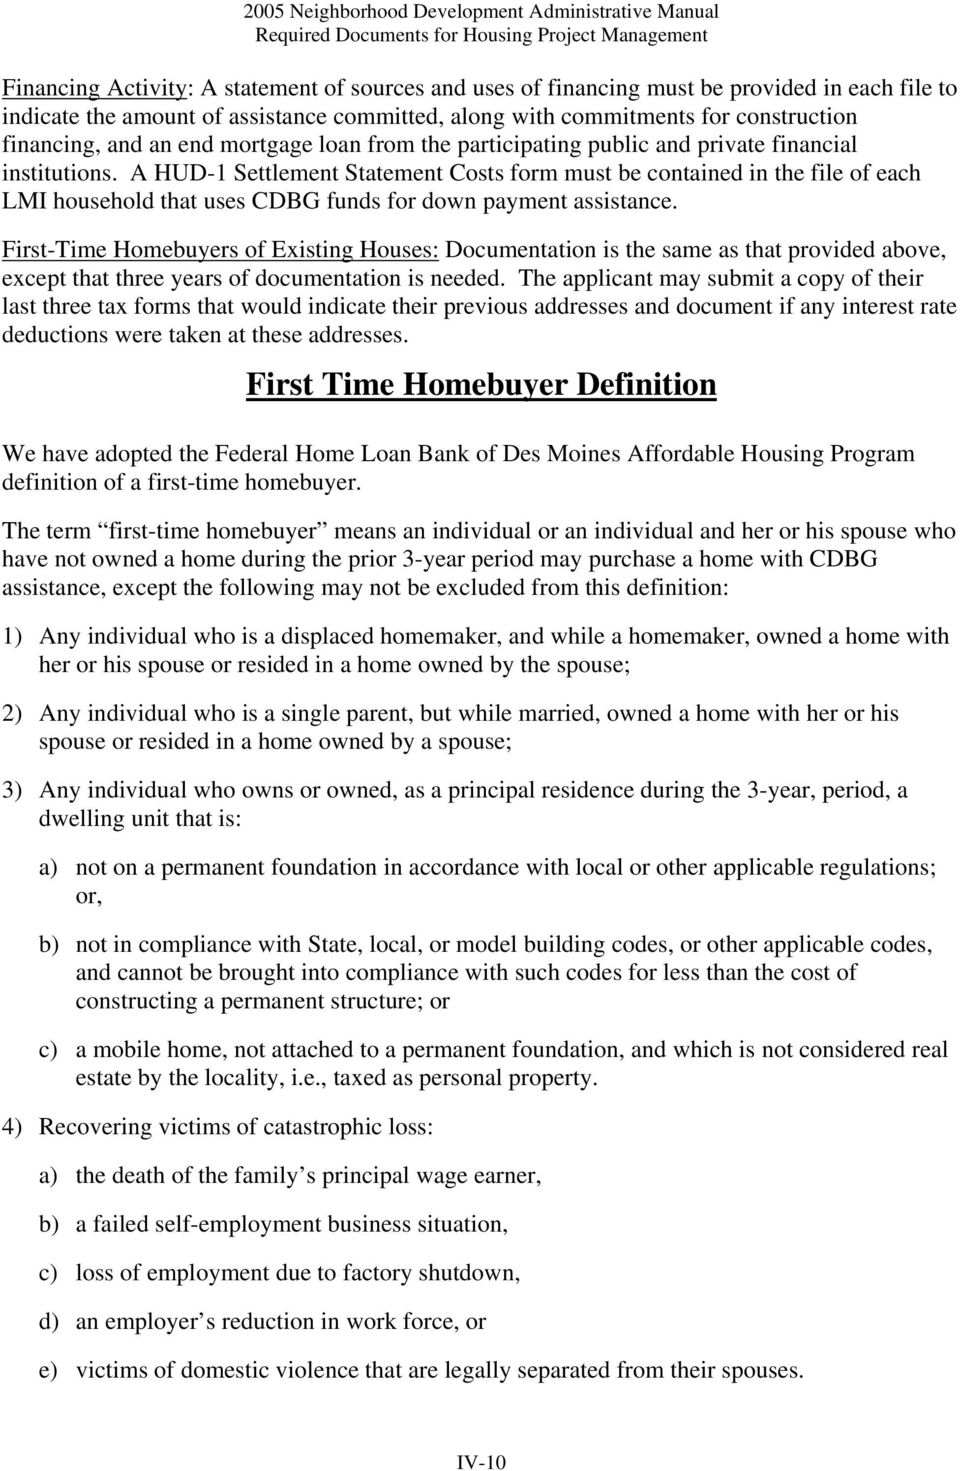 A HUD-1 Settlement Statement Costs form must be contained in the file of each LMI household that uses CDBG funds for down payment assistance.